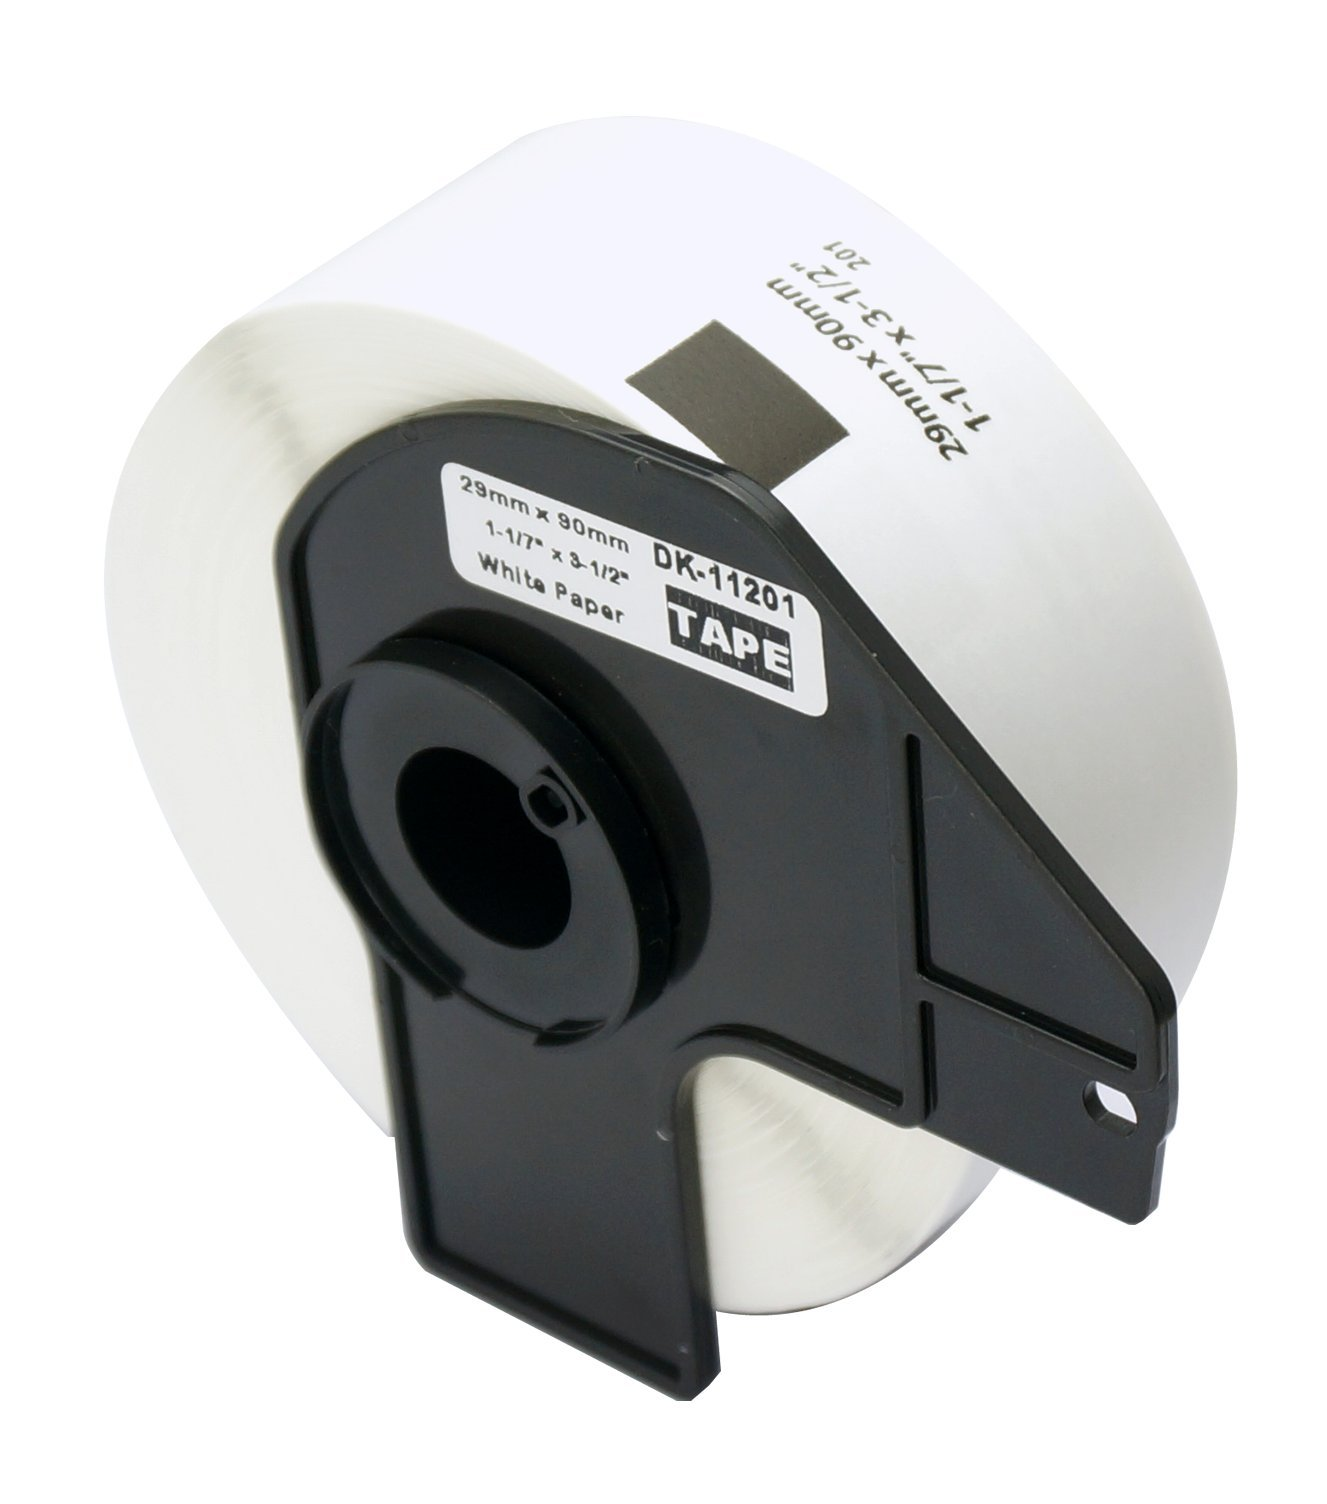 6 Rolls Brother-Compatible DK-1201 P-Touch 29mm x 90mm(1-1/7'' x 3-1/2'') 2400 Standard Address Labels With Cartridge by BETCKEY (Image #2)